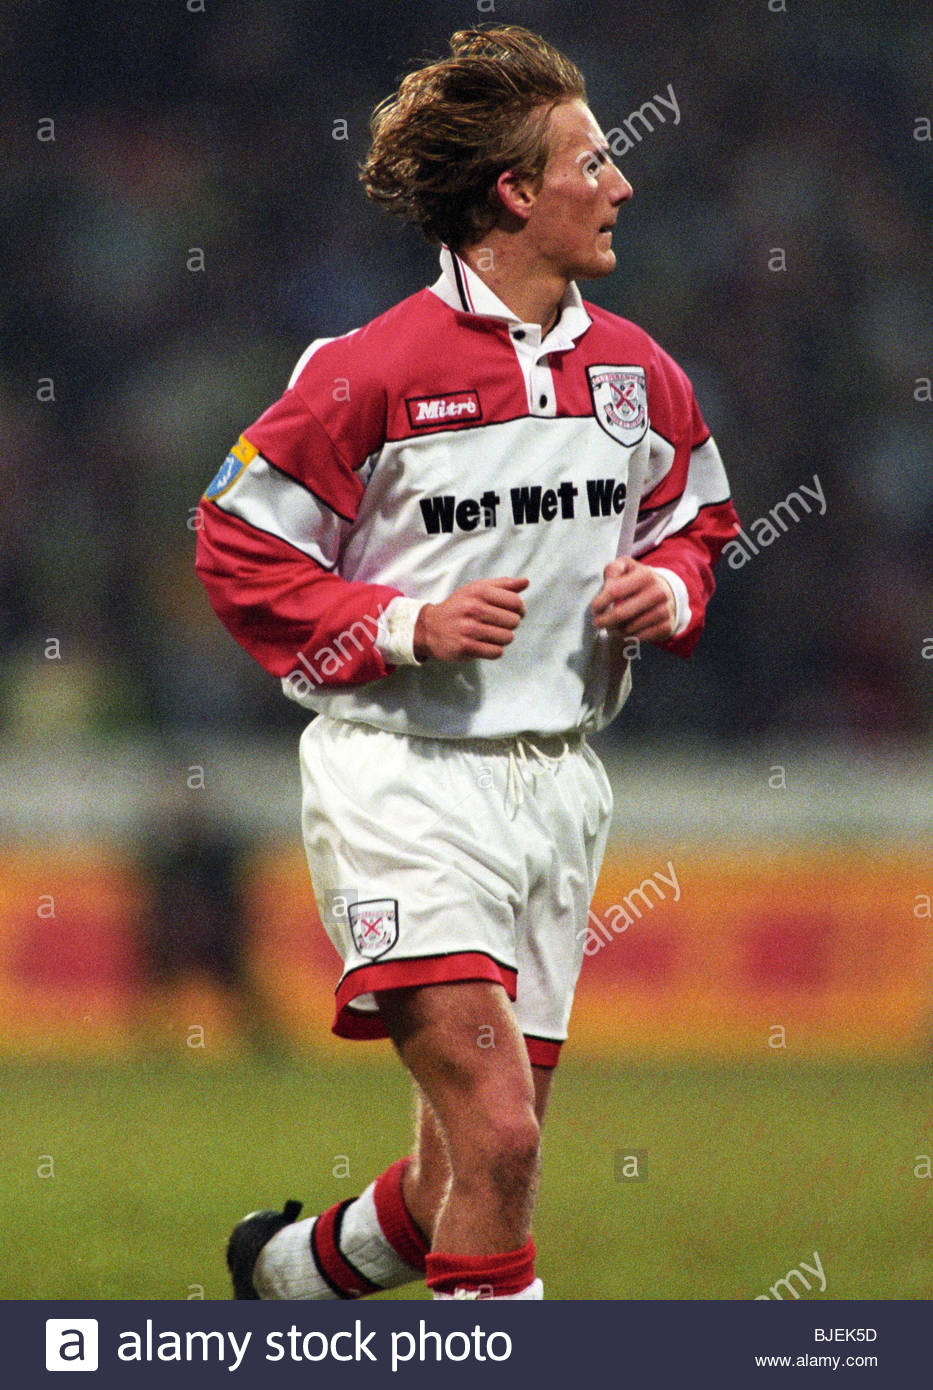 26/01/97 TENNENT'S SCOTTISH CUP 3RD RND CLYDEBANK V CELTIC (0-5) FIRHILL - GLASGOW Gary Teale in action for - Stock Image